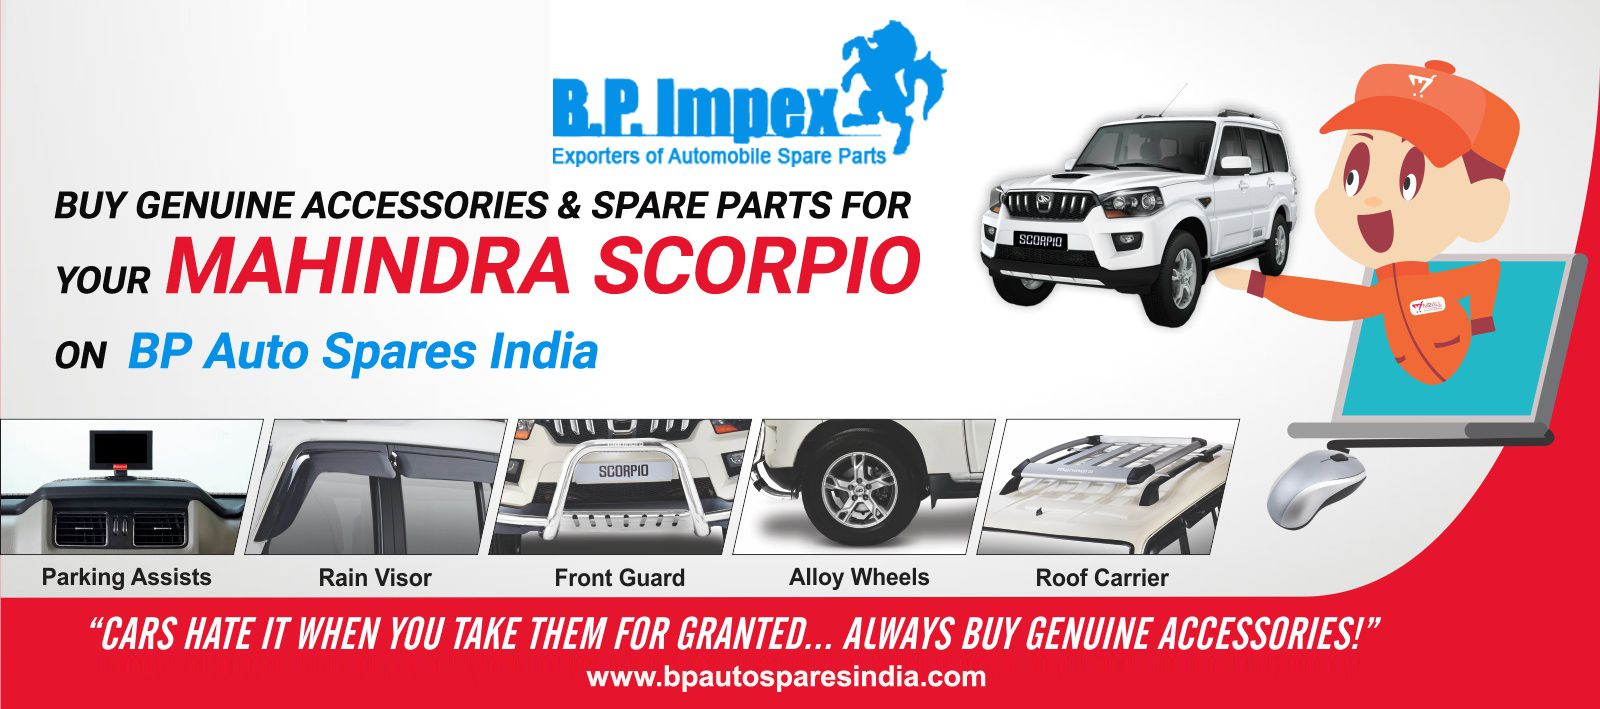 In Case You Are Looking For Quality Mahindra Scorpio Parts For